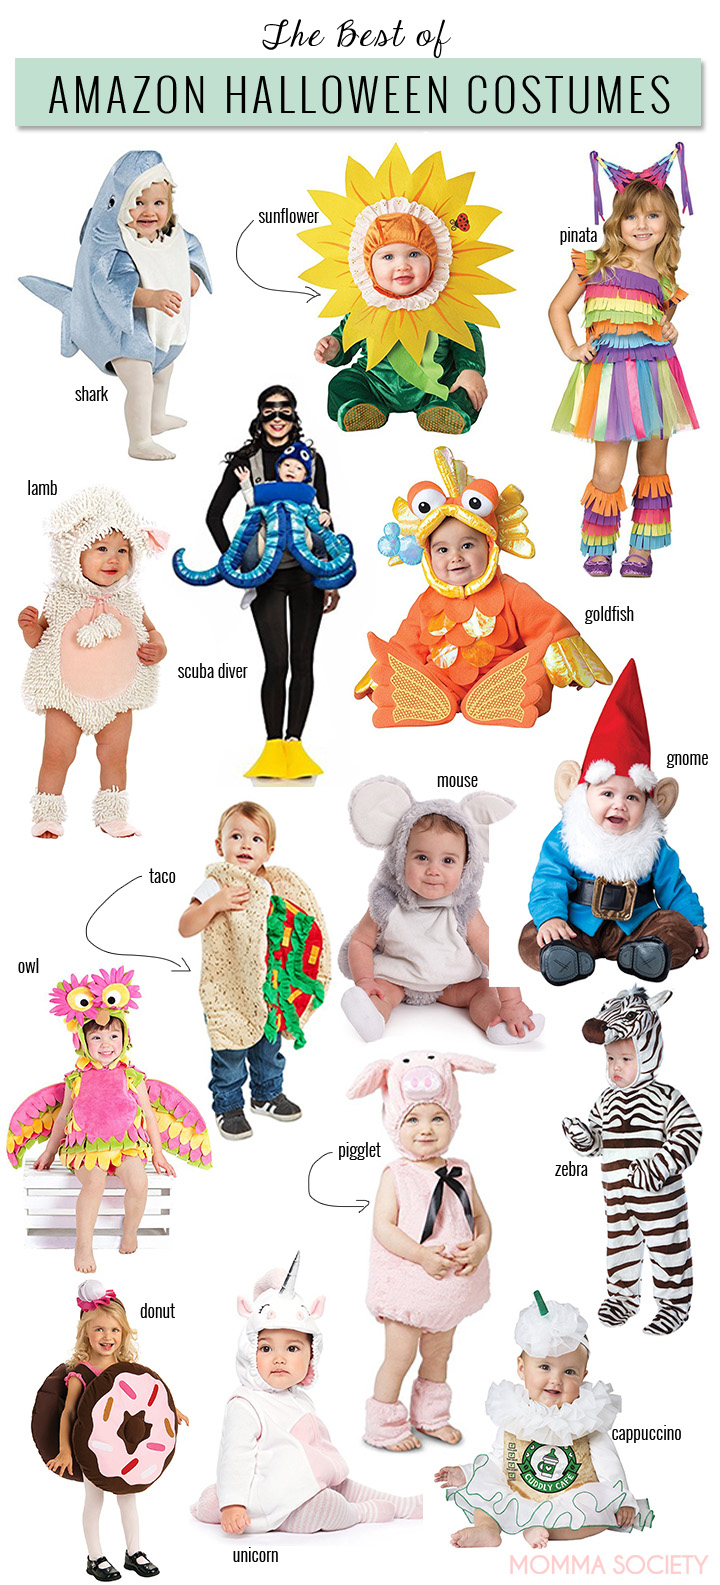 Best Halloween Costumes on Amazon | Toddler u0026 Baby Halloween costumes | Costume Ideas | Halloween  sc 1 st  Momma Society & I Searched 1500 Baby u0026 Toddler Costumes on Amazon u0026 These Are My ...